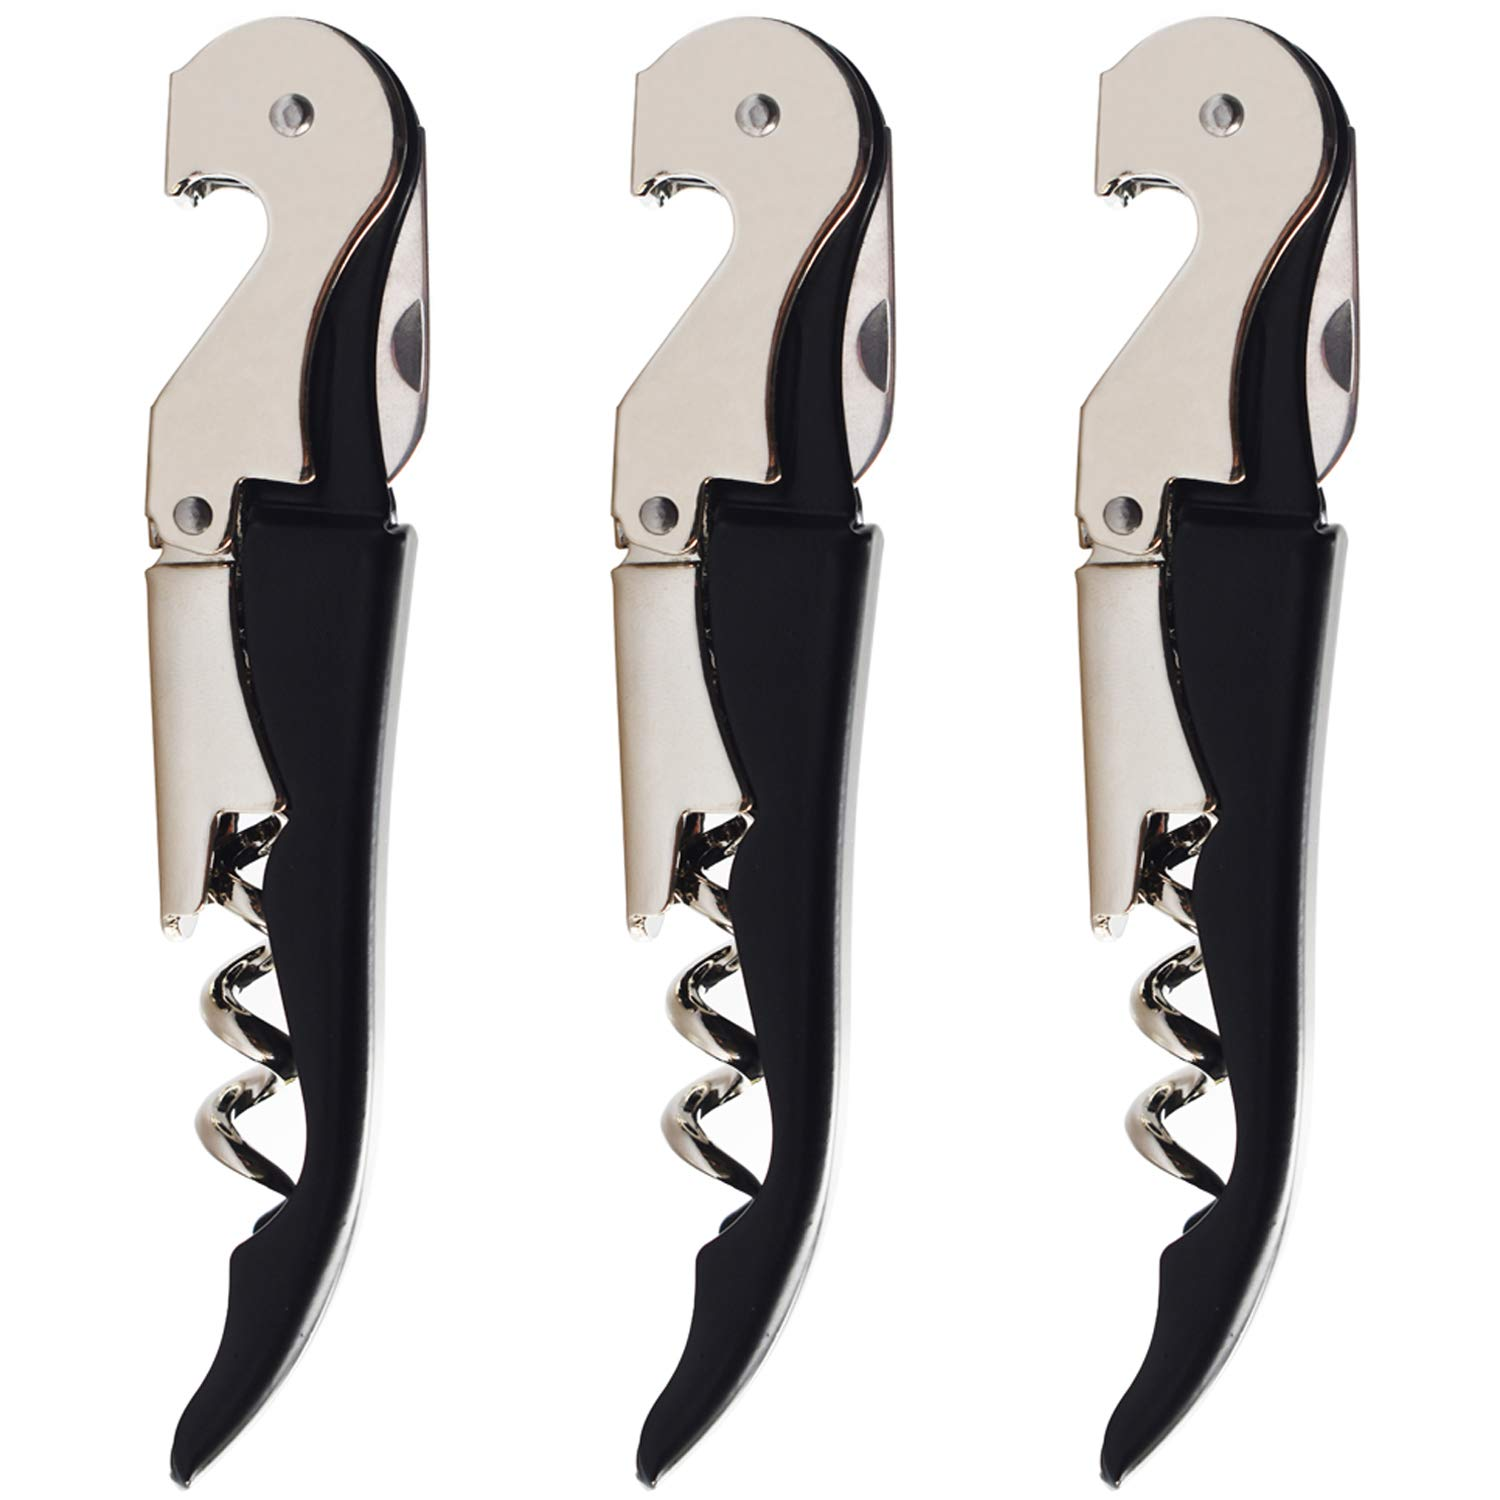 HYZ Twichan 3 Pack Waiter Corkscrew Upgraded Heavy Duty Wine Opener Set with Foil Cutter and Bottle Opener Wine Key for Restaurant Waiters, Sommelier, Bartenders and Wine Enthusiast Black by HYZ